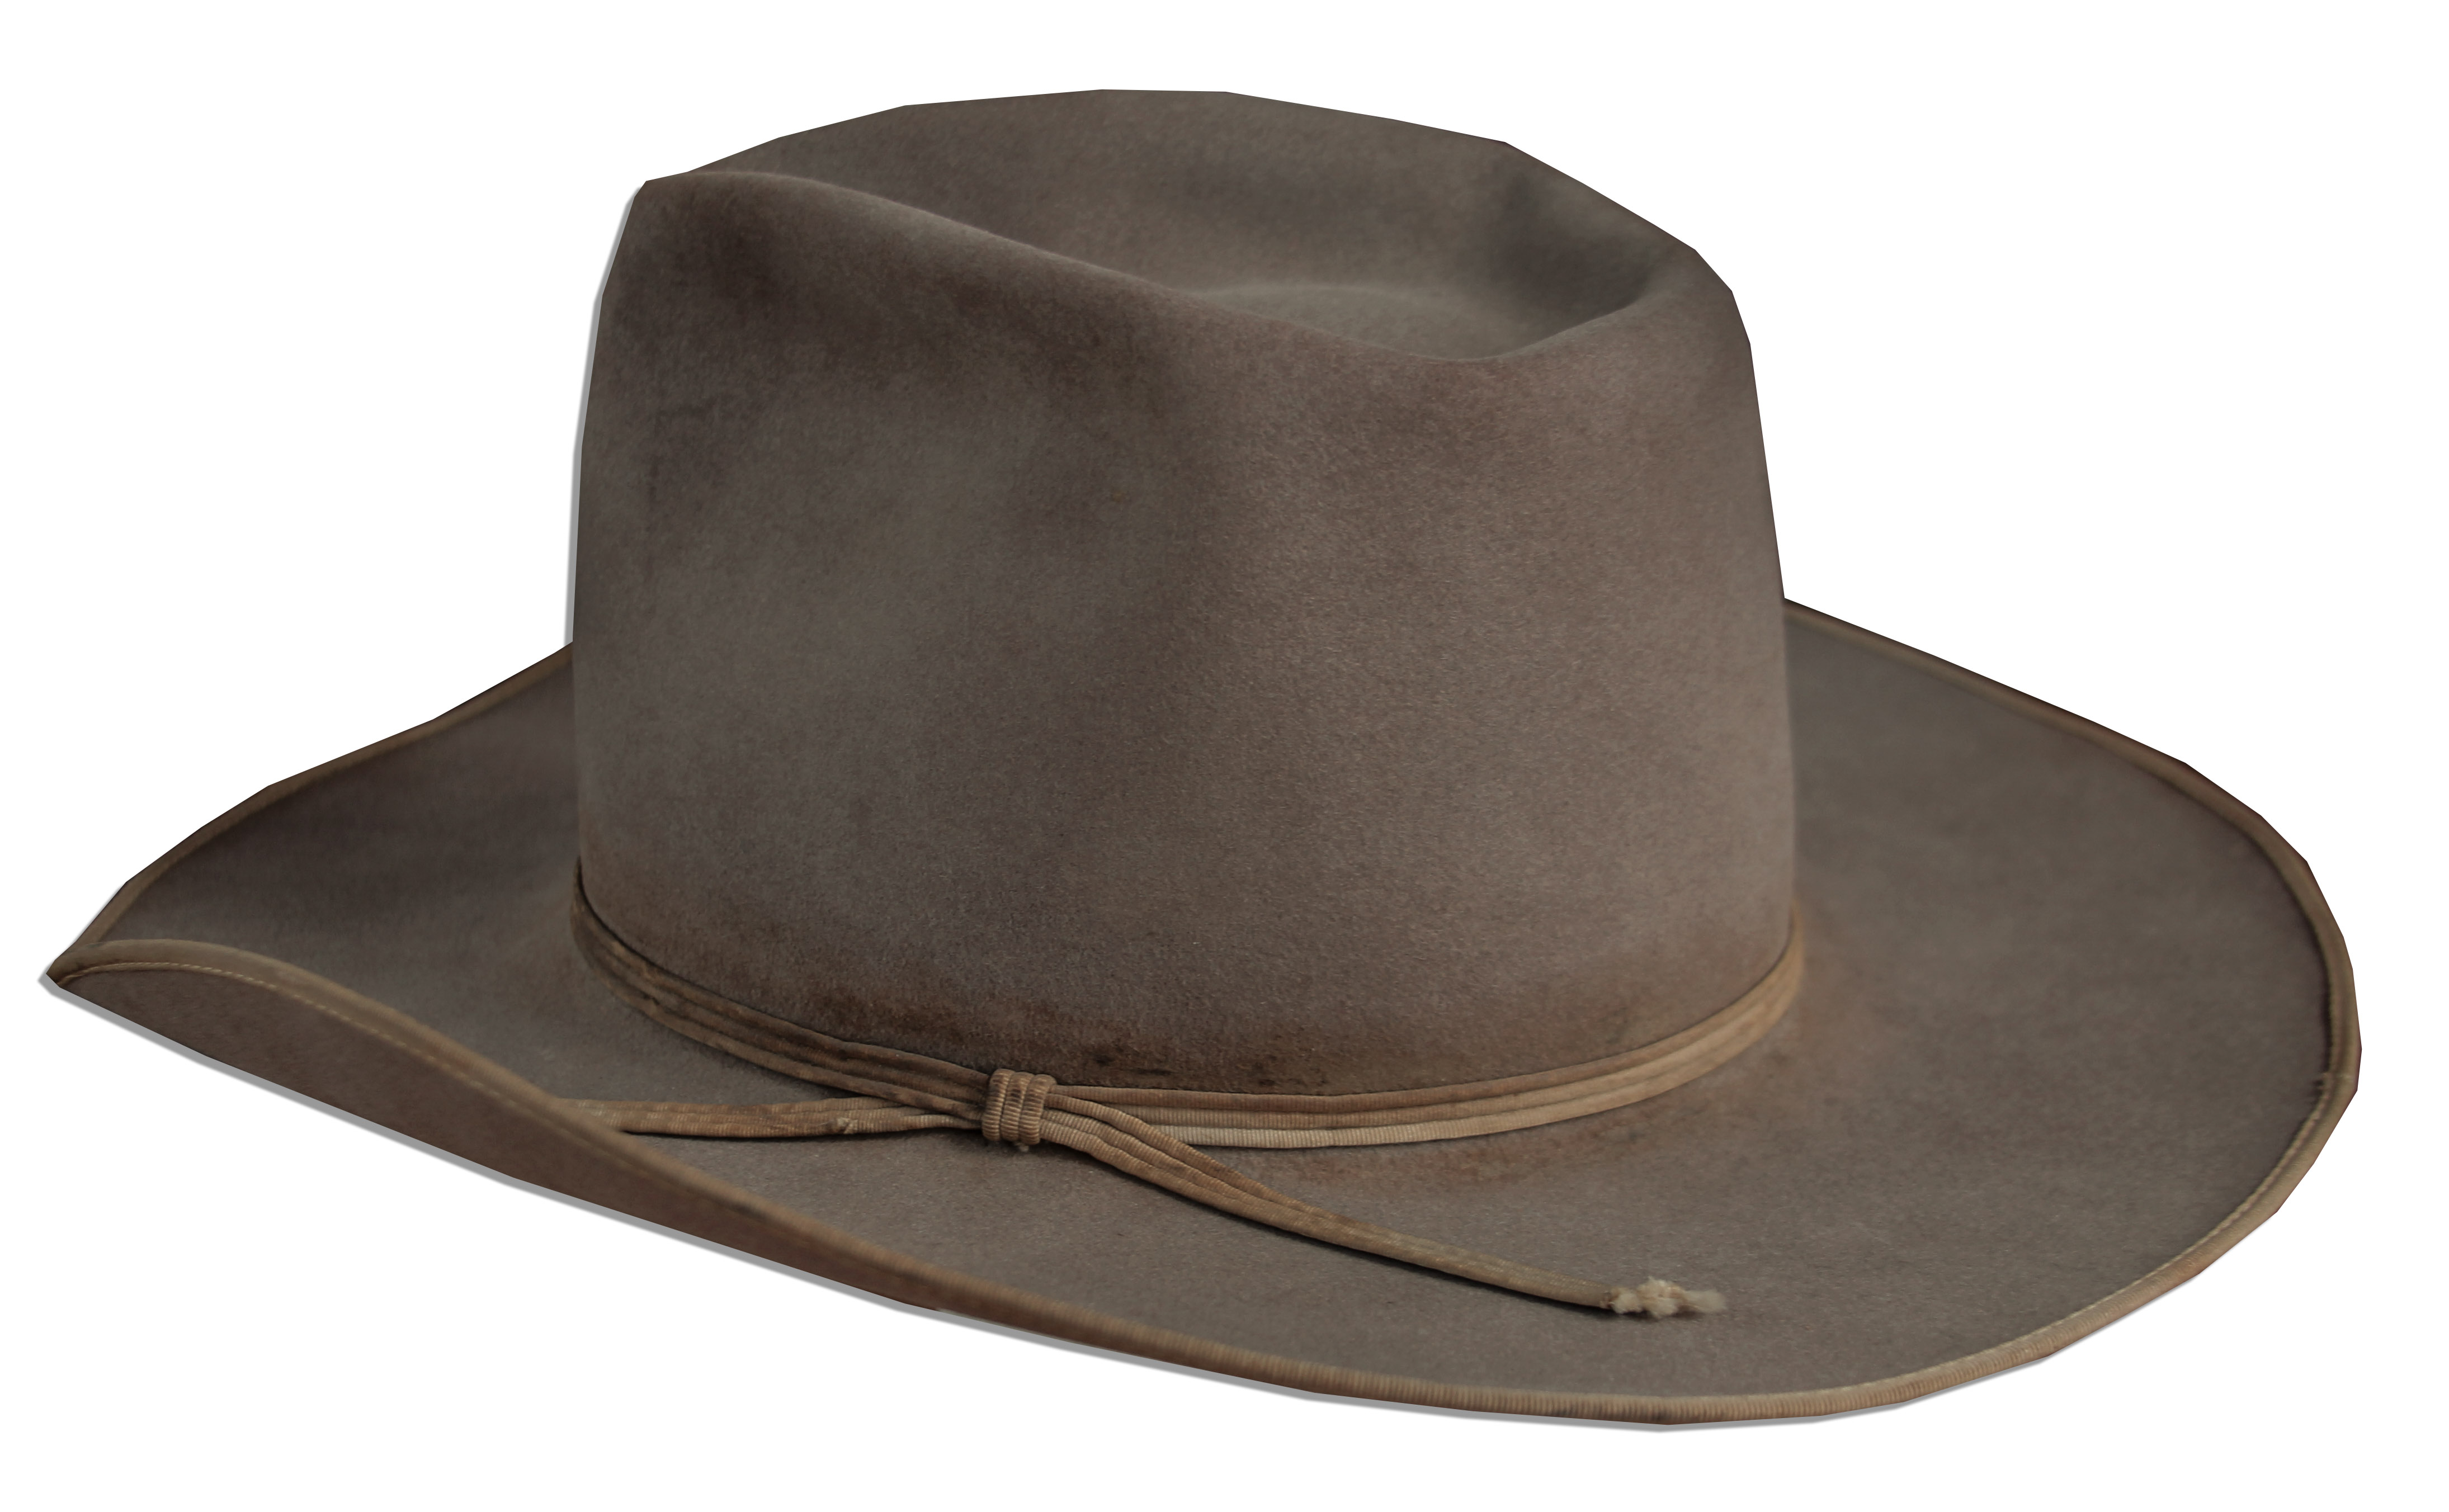 ... Scarce John Wayne Cowboy Hat Worn in Six Films That Defined The Iconic  Actor s Western Career ... cc2cc74ba16